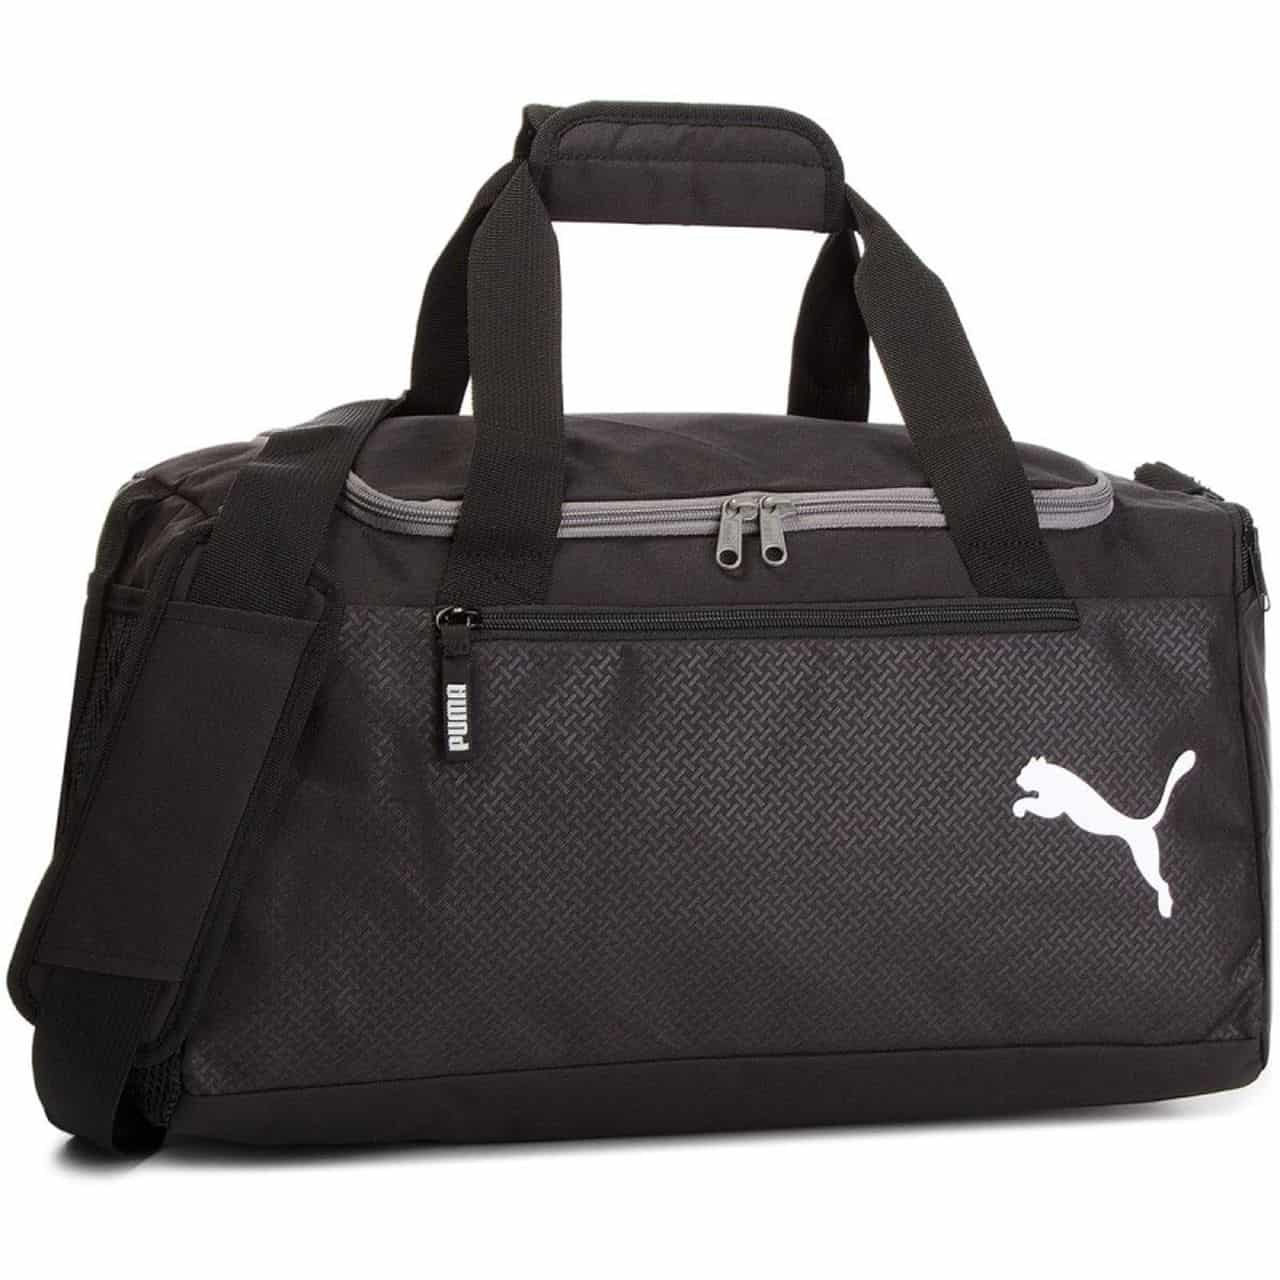 GEANTA ORIGINALA PUMA FUNDAMENTALS SPORTS BAG S - 075527 01